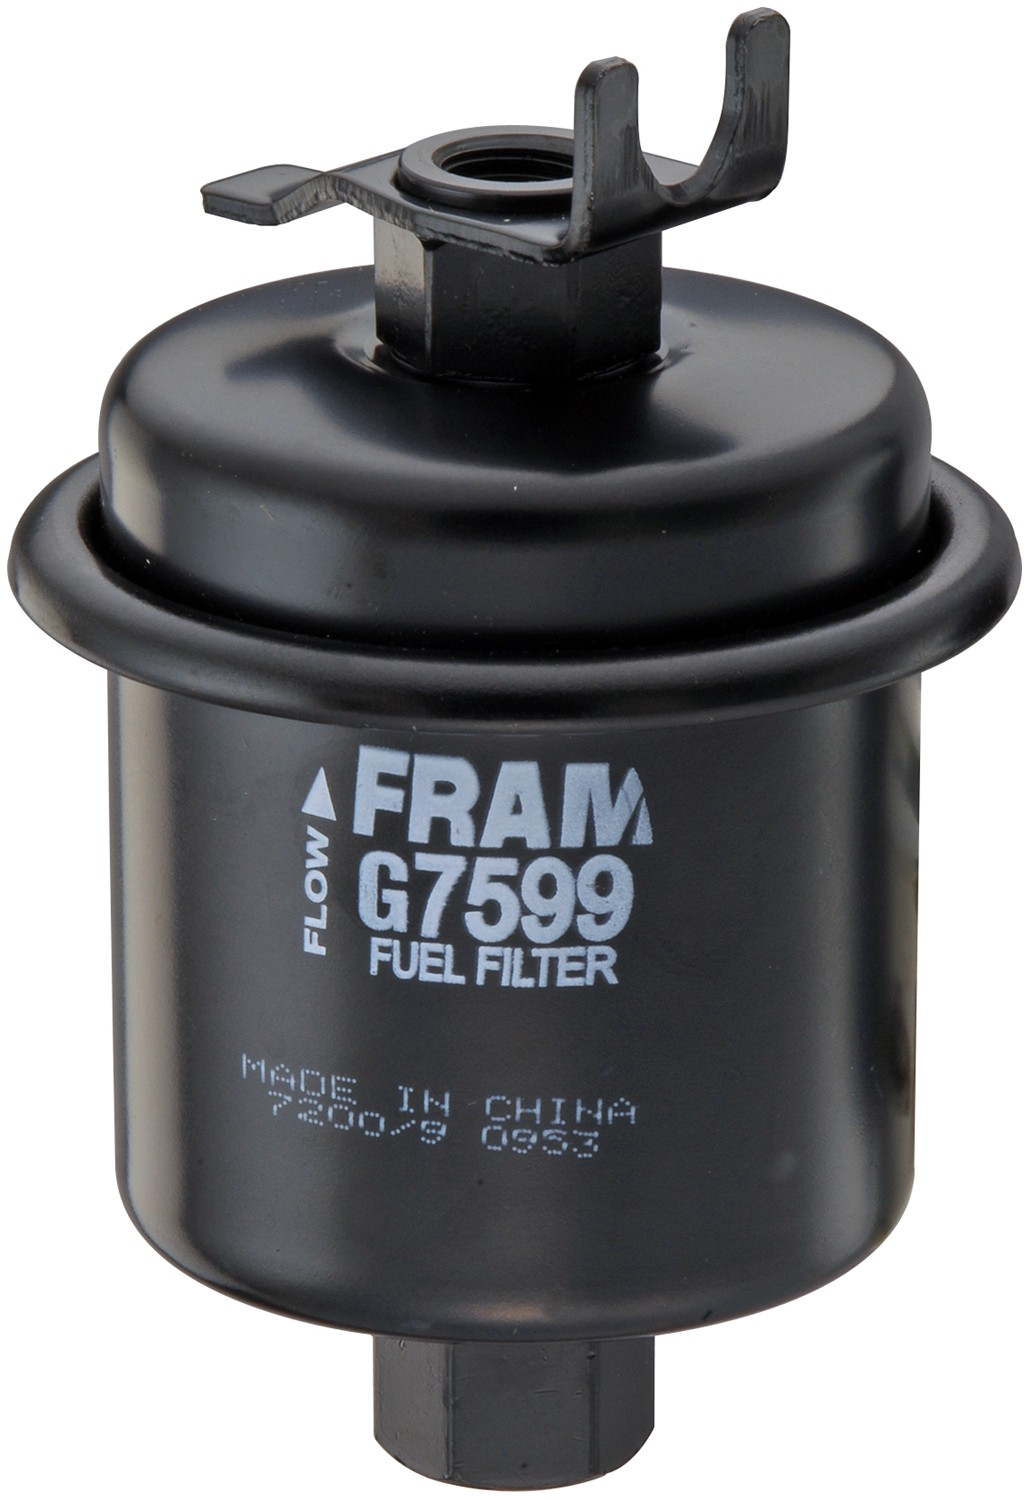 Fram G7599 Fuel Filter for Acura CL, EL, Integra, RL, TL, Honda Accord,  Civic